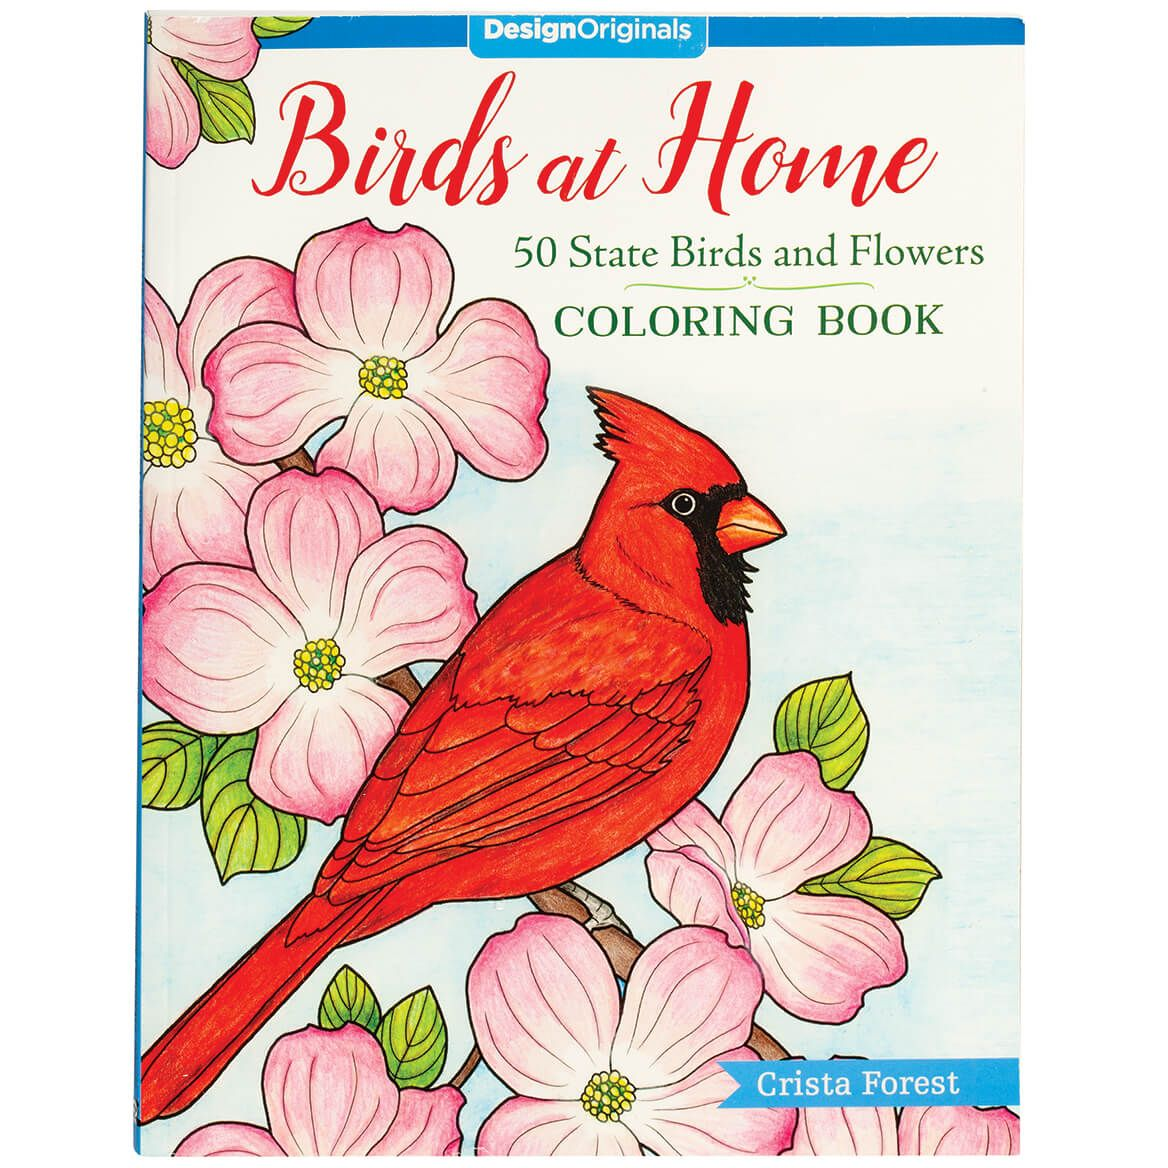 Birds at Home: 50 State Birds & Flowers Coloring Book-372562